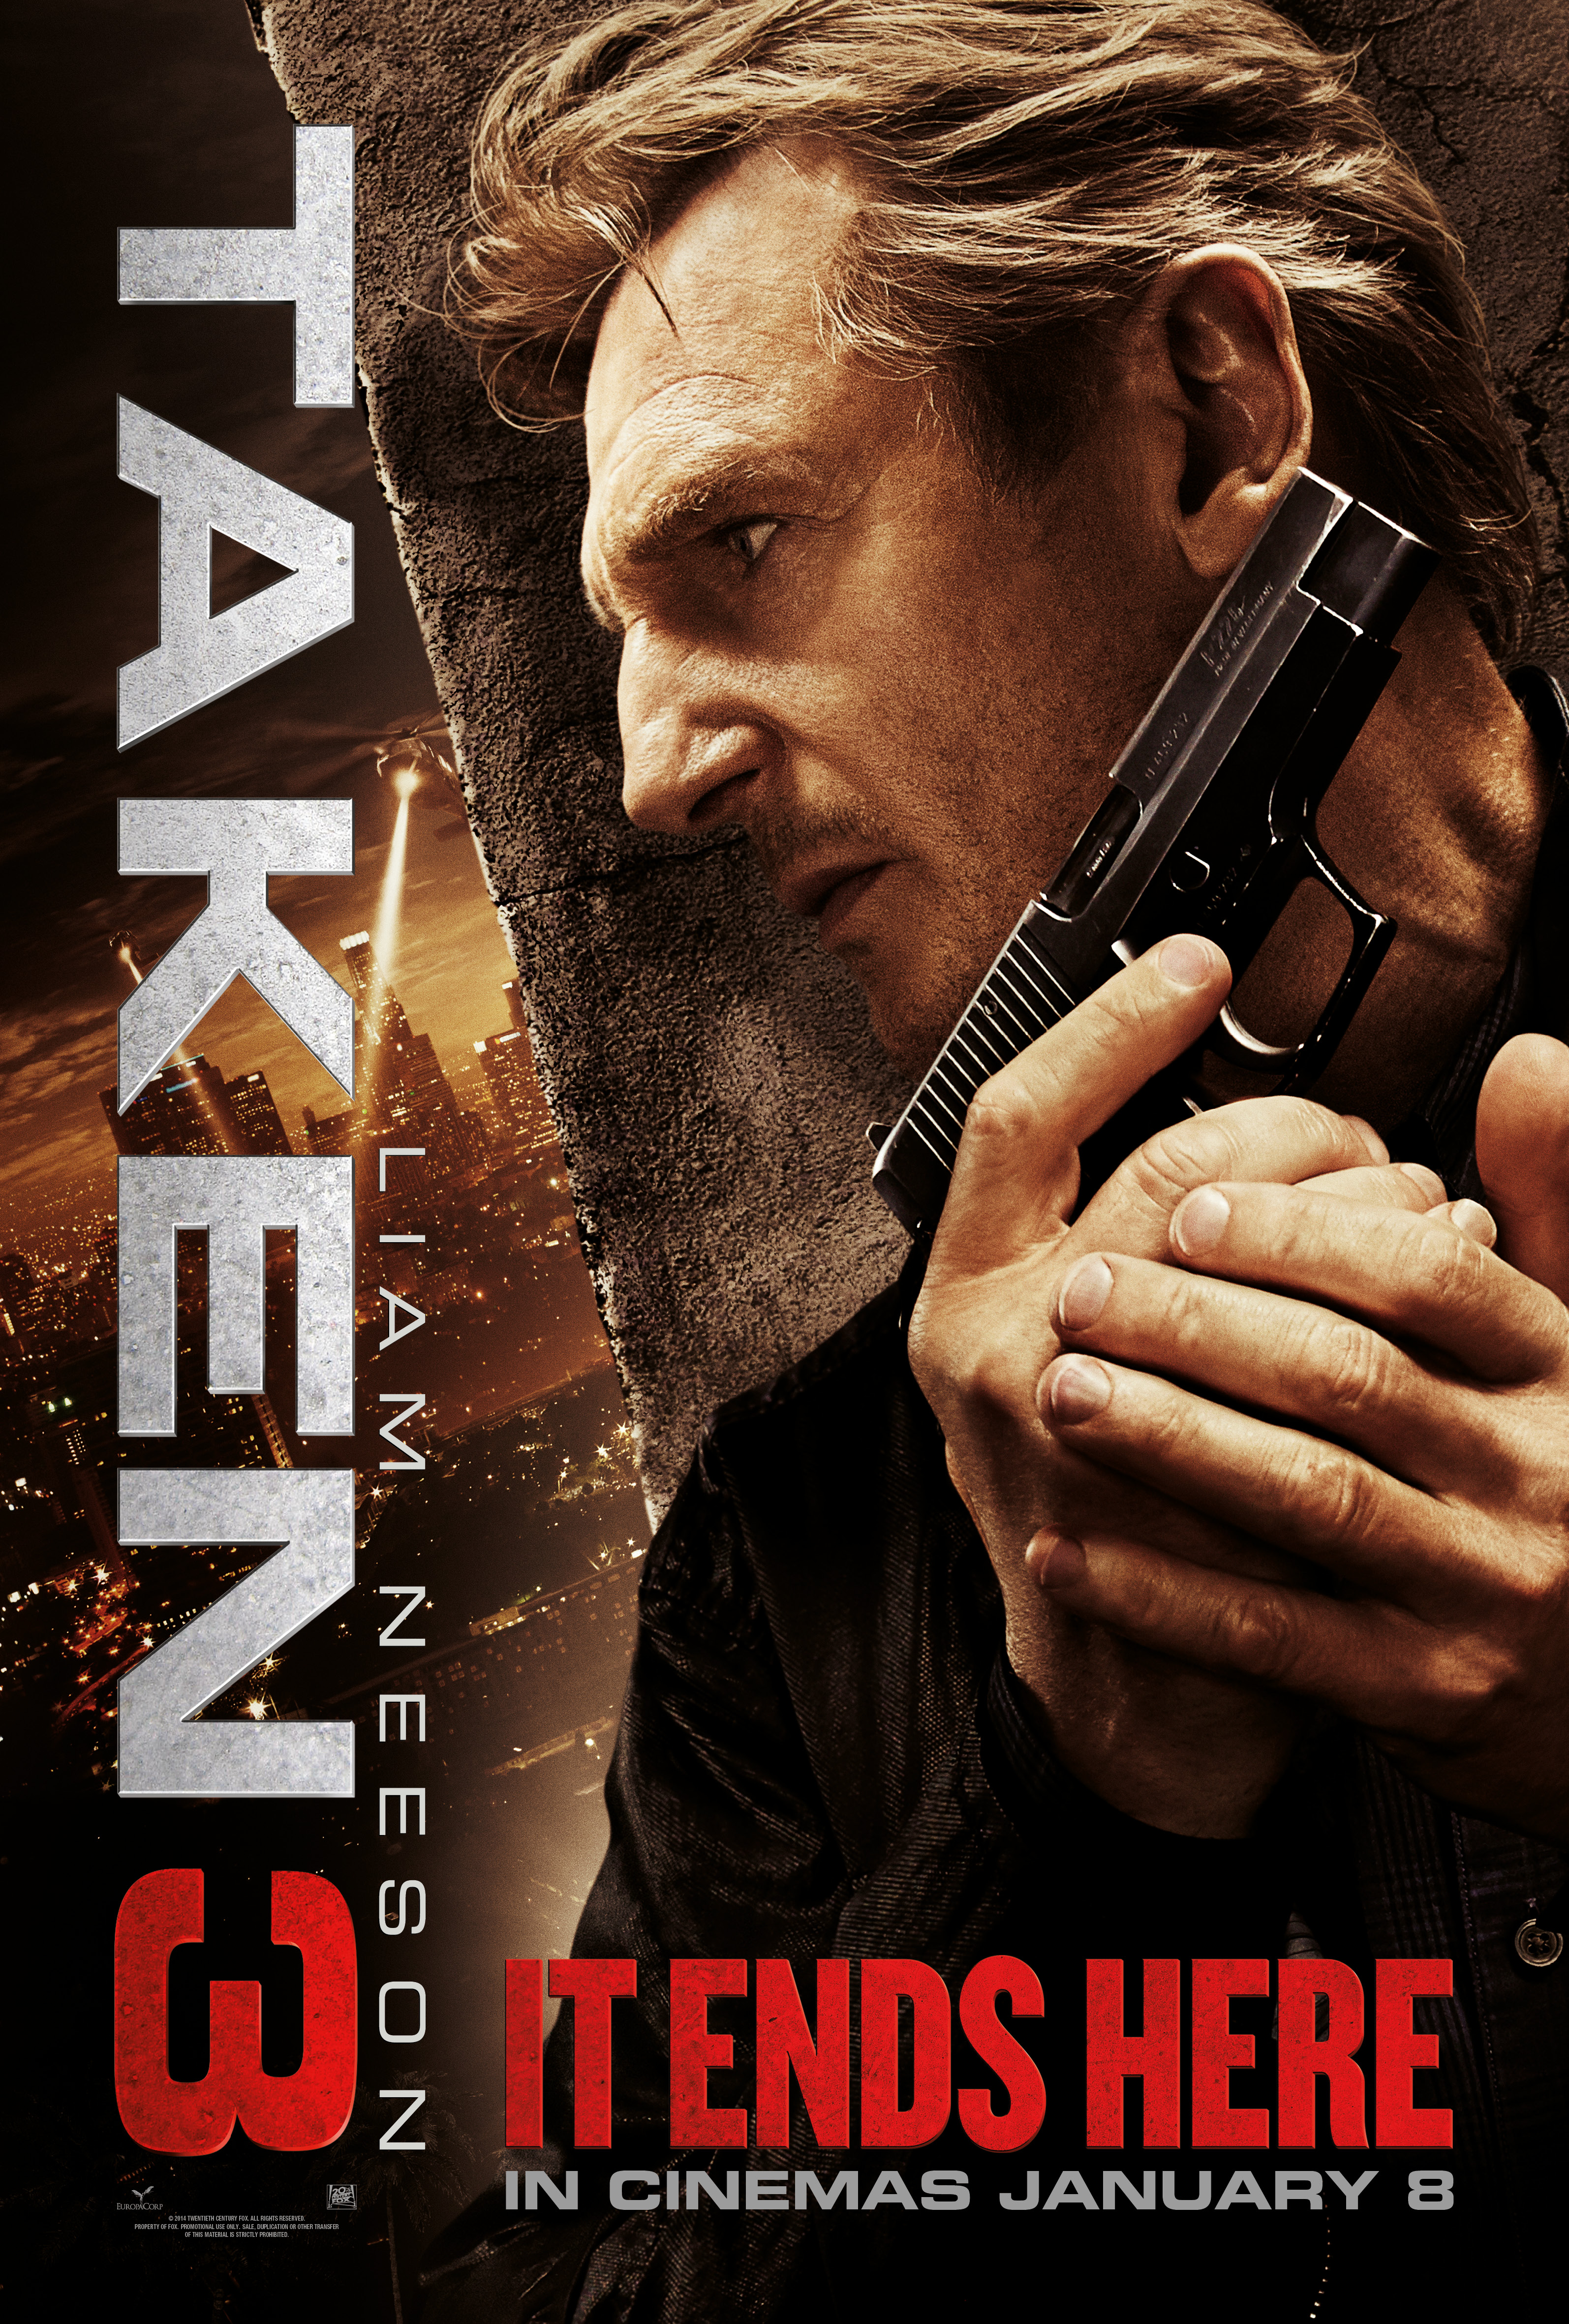 New Poster and First Clip from Taken 3 Starring Liam Neeson